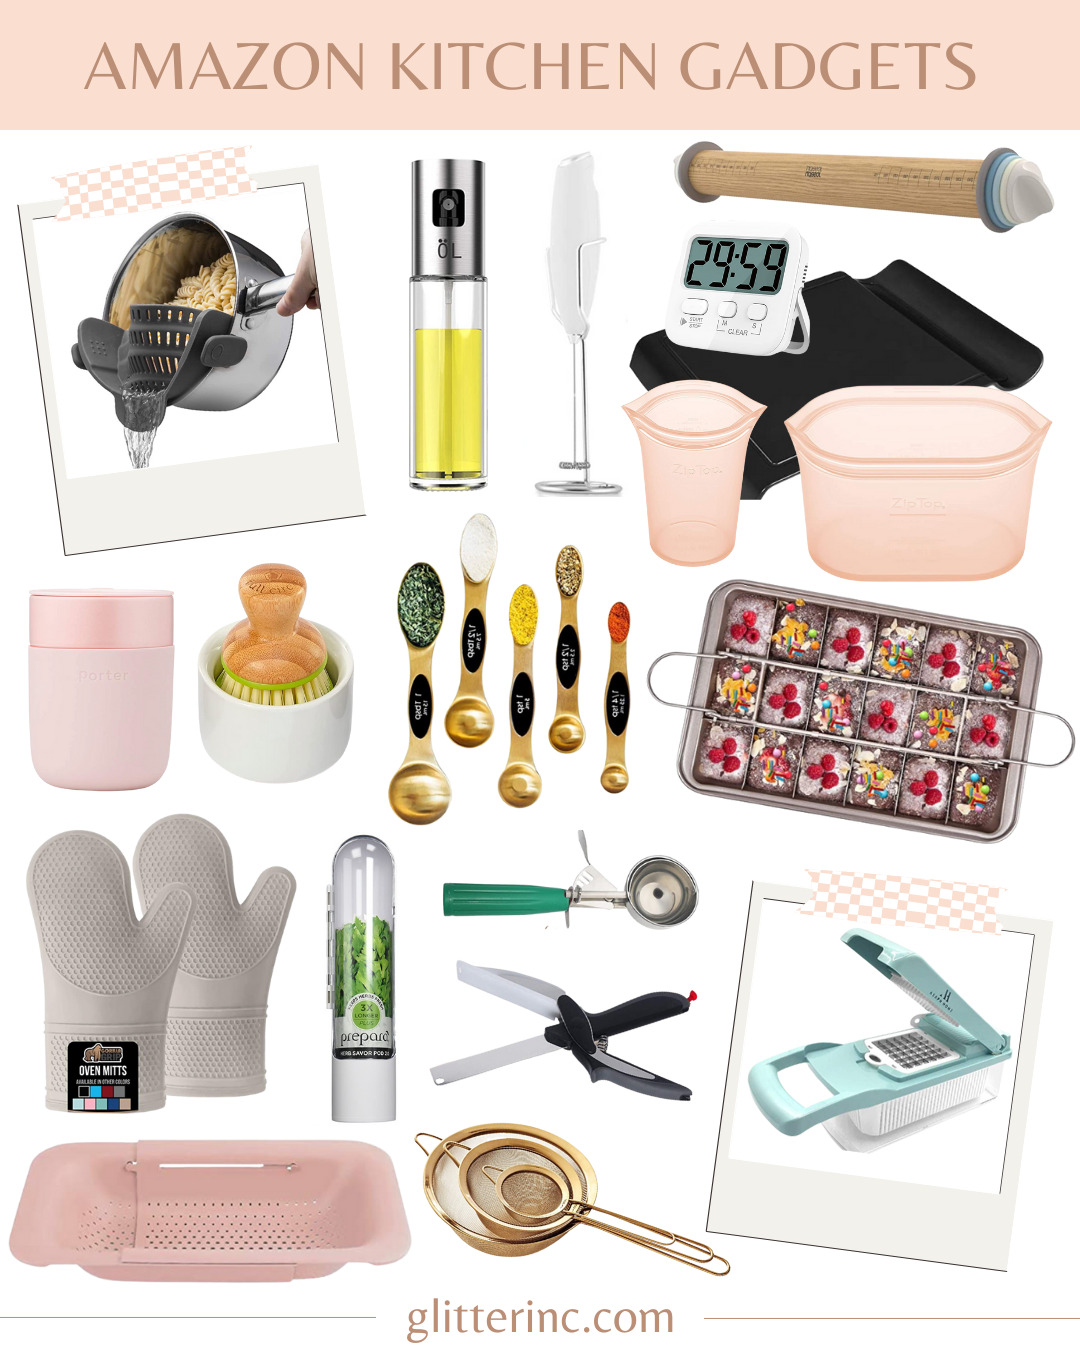 collage of 18 Amazingly Useful Amazon Kitchen Gadgets- Cooking and Baking Essentials to Make Life Easier -   @glitterinclexi   GLITTERINC.COM